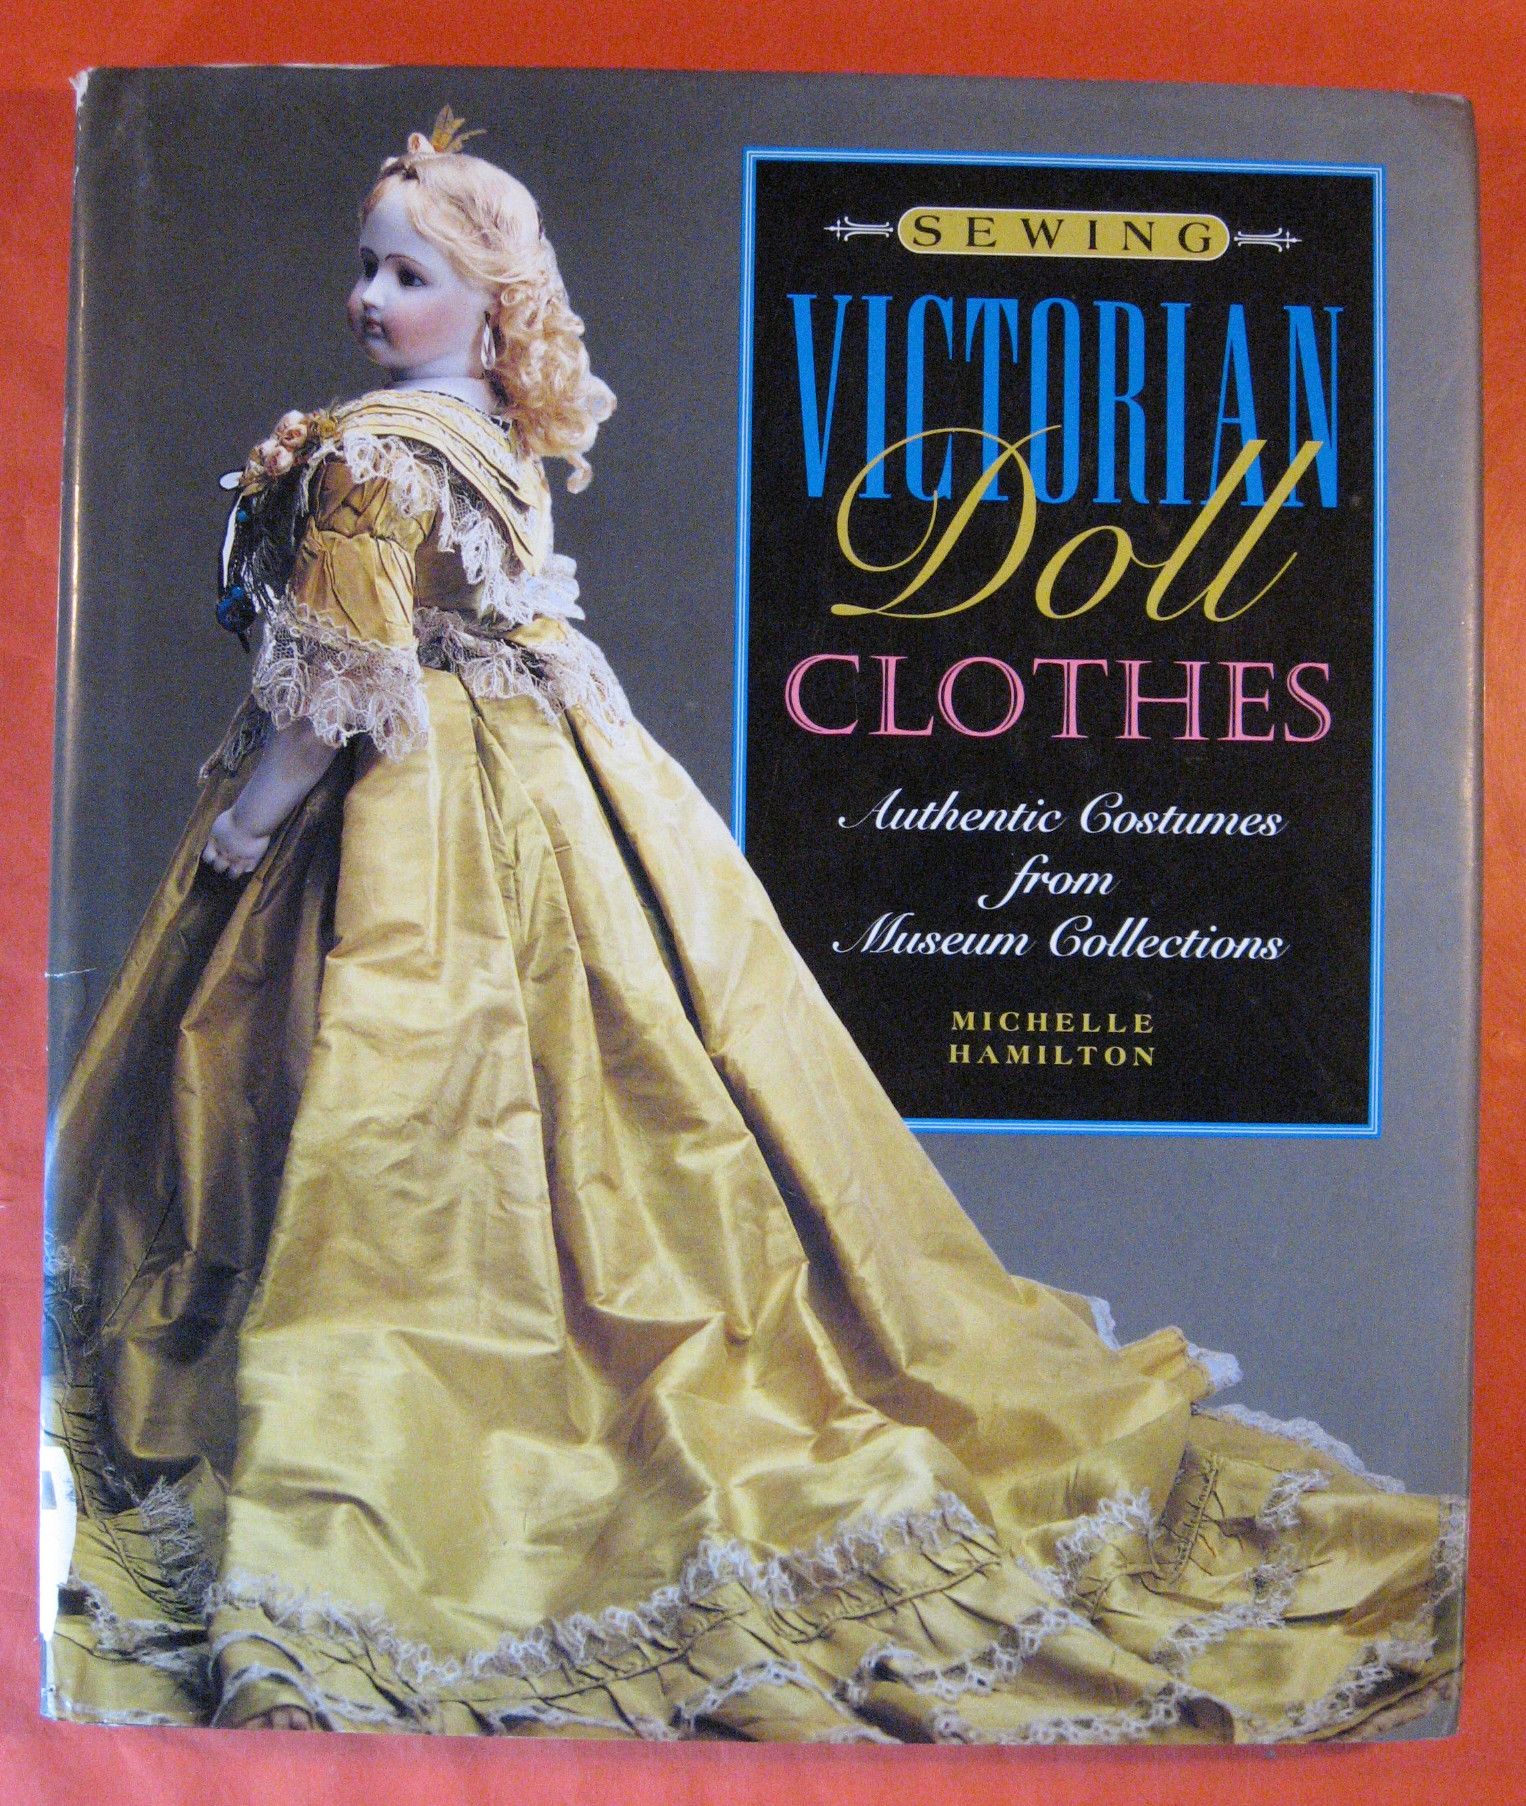 Sewing Victorian Doll Clothes: Authentic Costumes from Museum Collections, Hamilton, Michelle